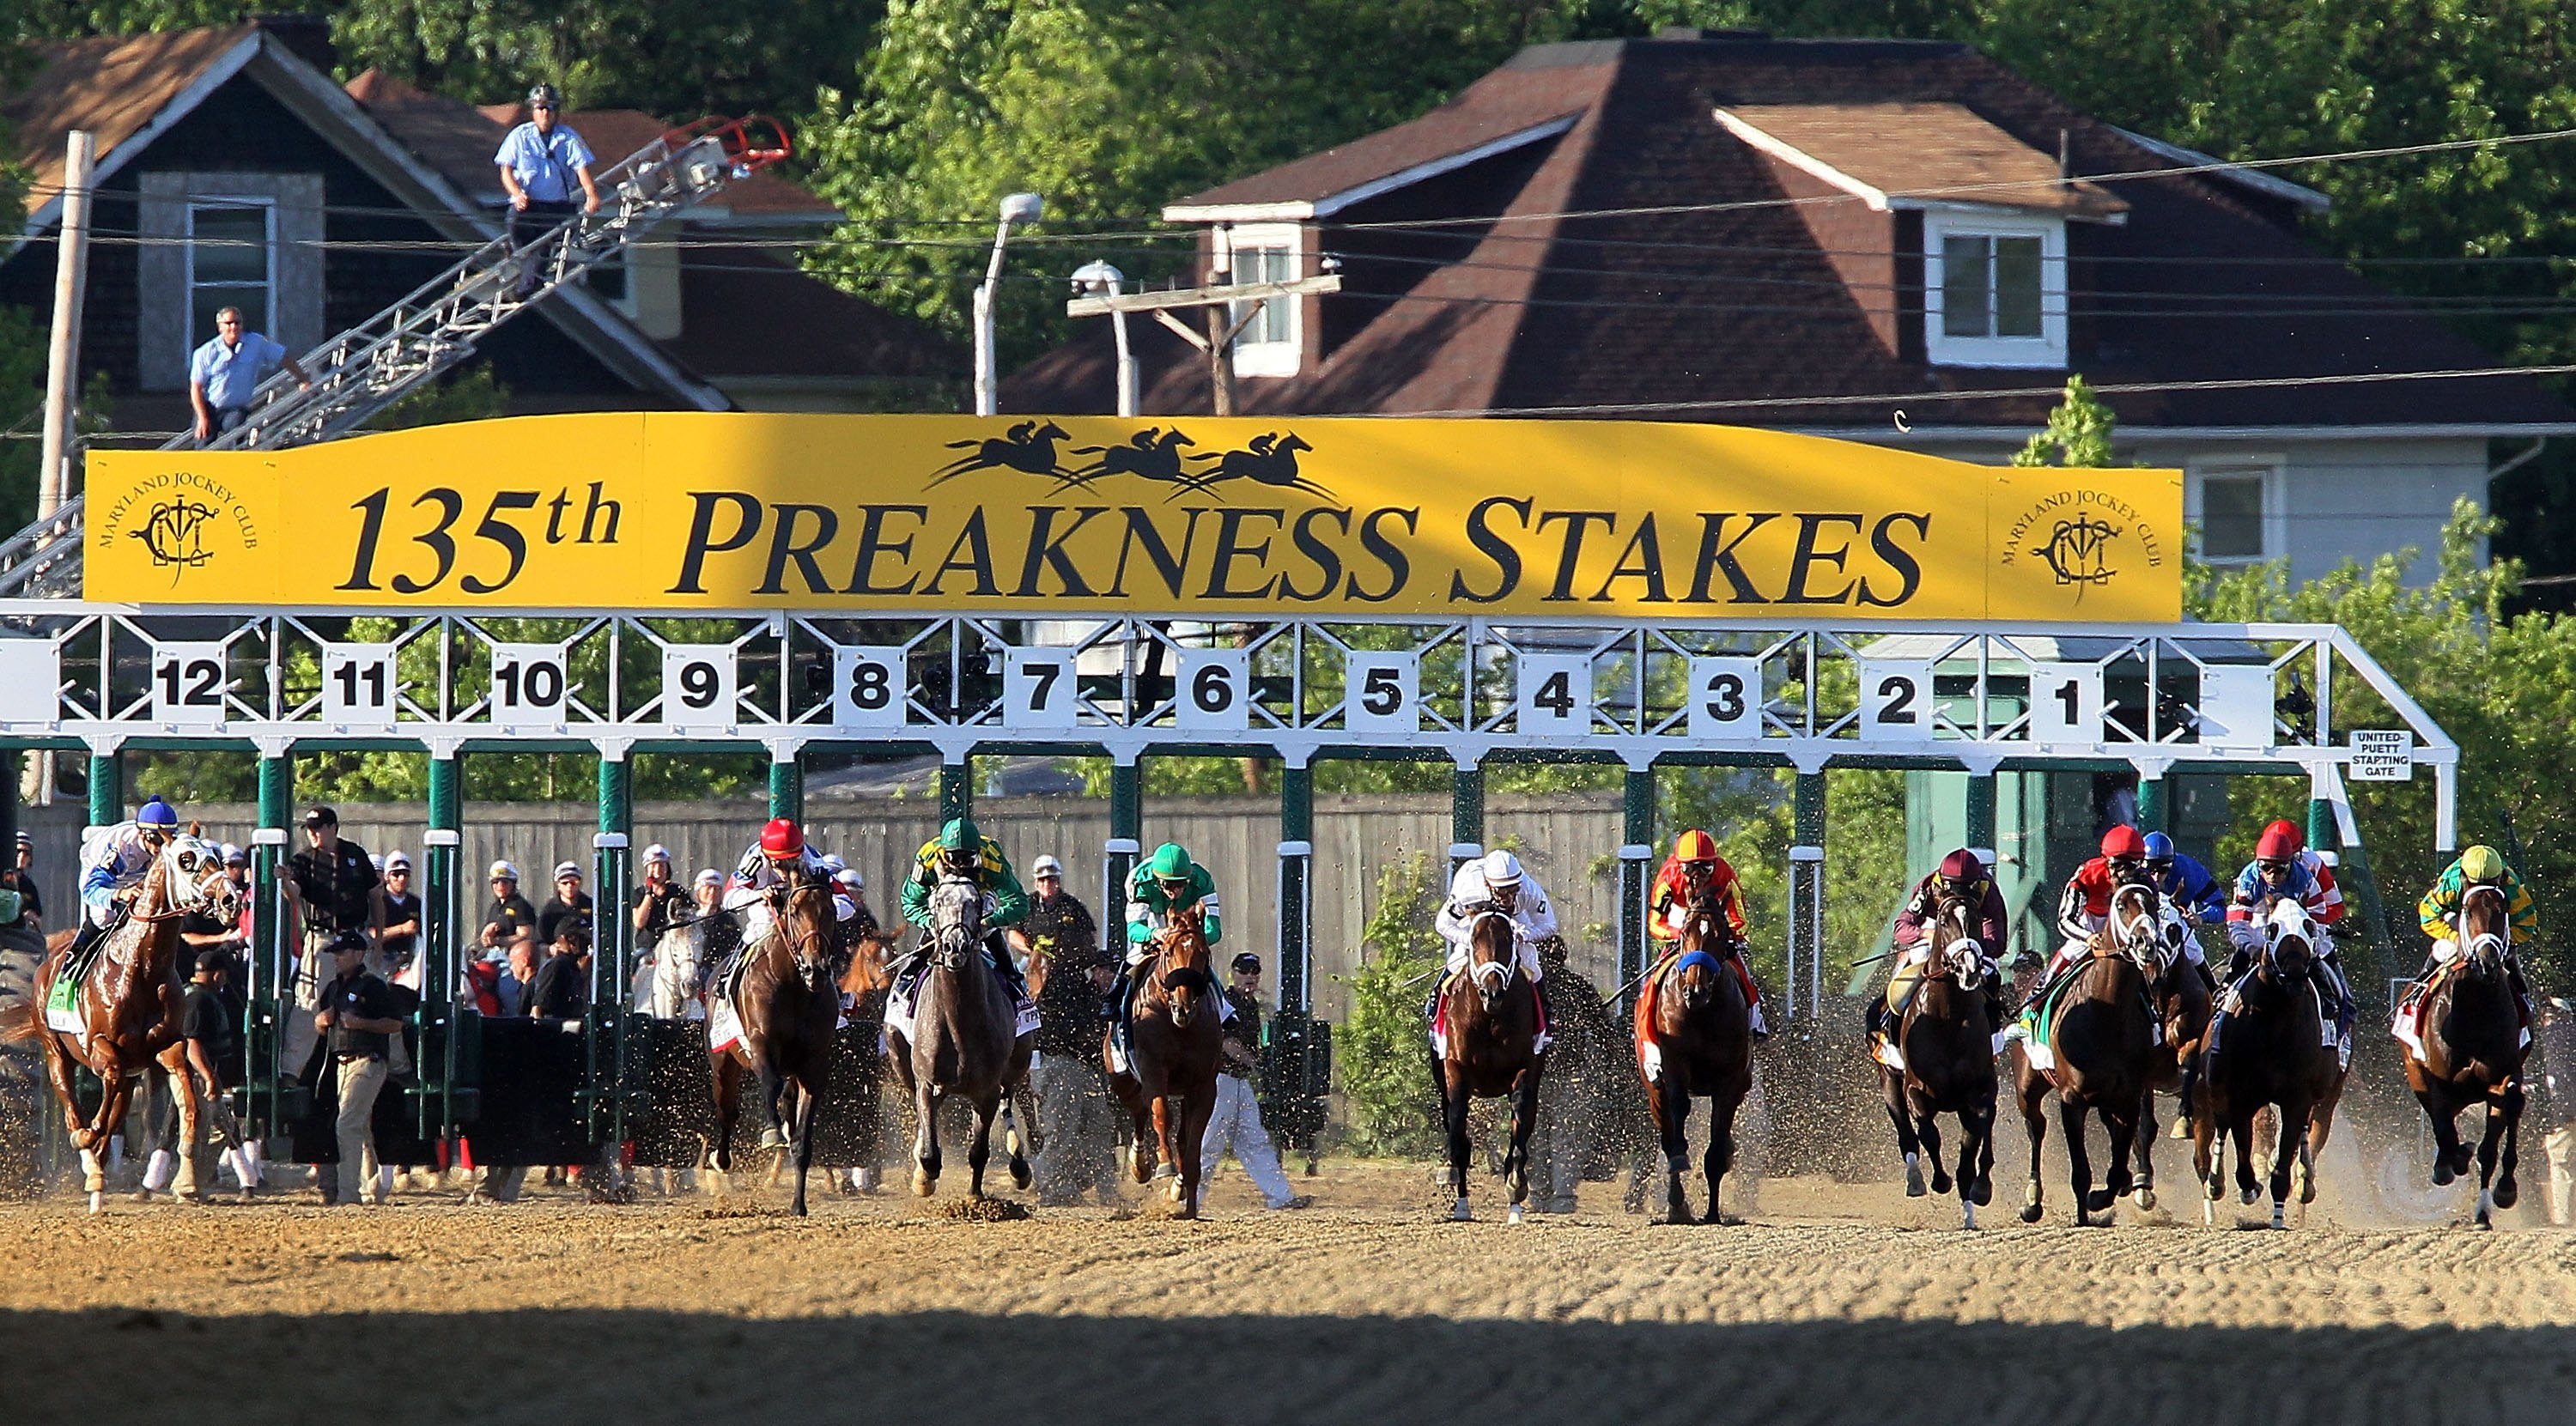 BALTIMORE - MAY 15:  The pack leaves the gate to start the 135th running of the Preakness Stakes at Pimlico Race Course on May 15, 2010 in Baltimore, Maryland.  (Photo by Jim McIsaac/Getty Images)